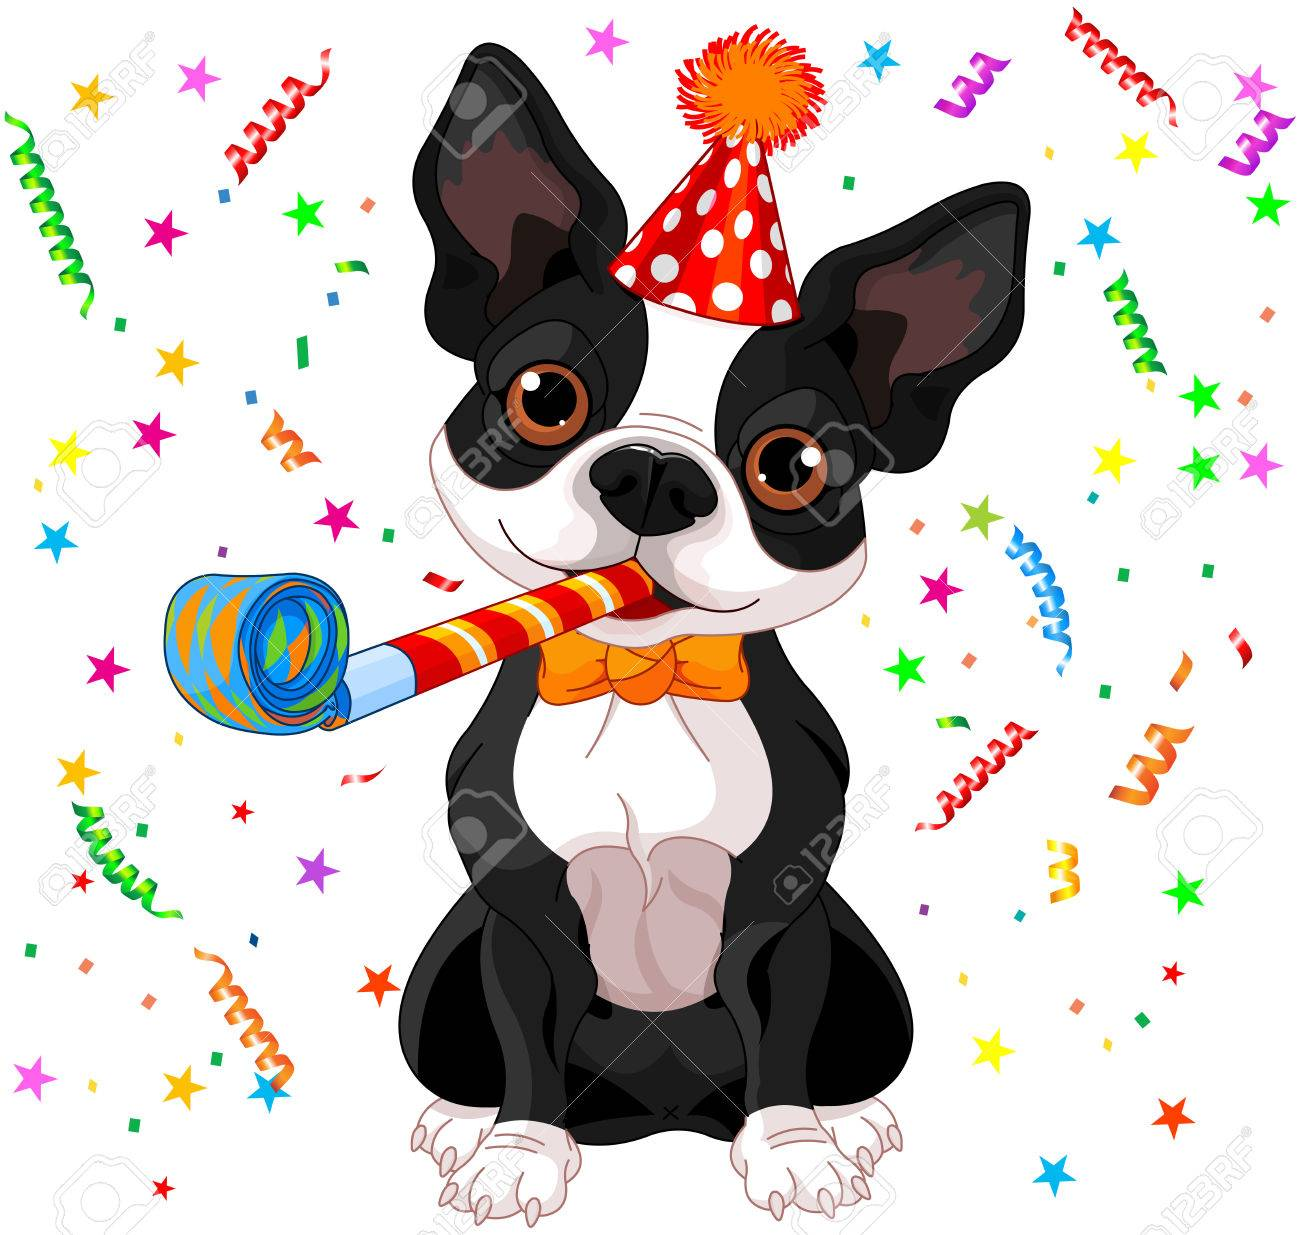 Chevauchements: hiérarchie/dominance? - Page 5 35588778-illustration-of-cute-boston-terrier-celebrating